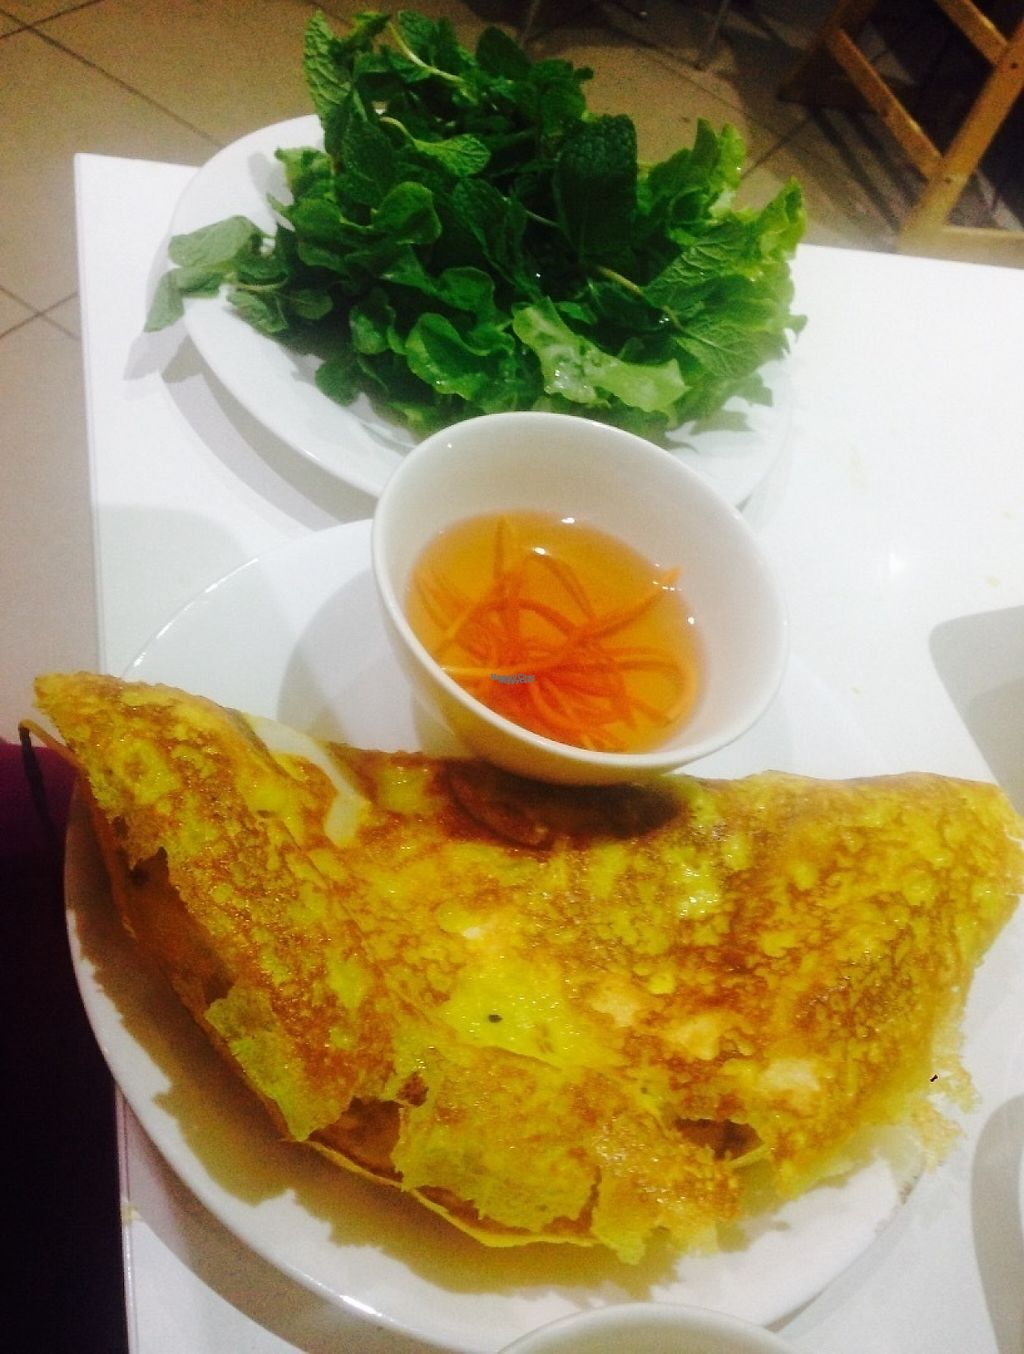 """Photo of Loving Hut  by <a href=""""/members/profile/NirvanaRoseWilliams"""">NirvanaRoseWilliams</a> <br/>The Vietnamese pancake  <br/> April 14, 2017  - <a href='/contact/abuse/image/11553/247796'>Report</a>"""